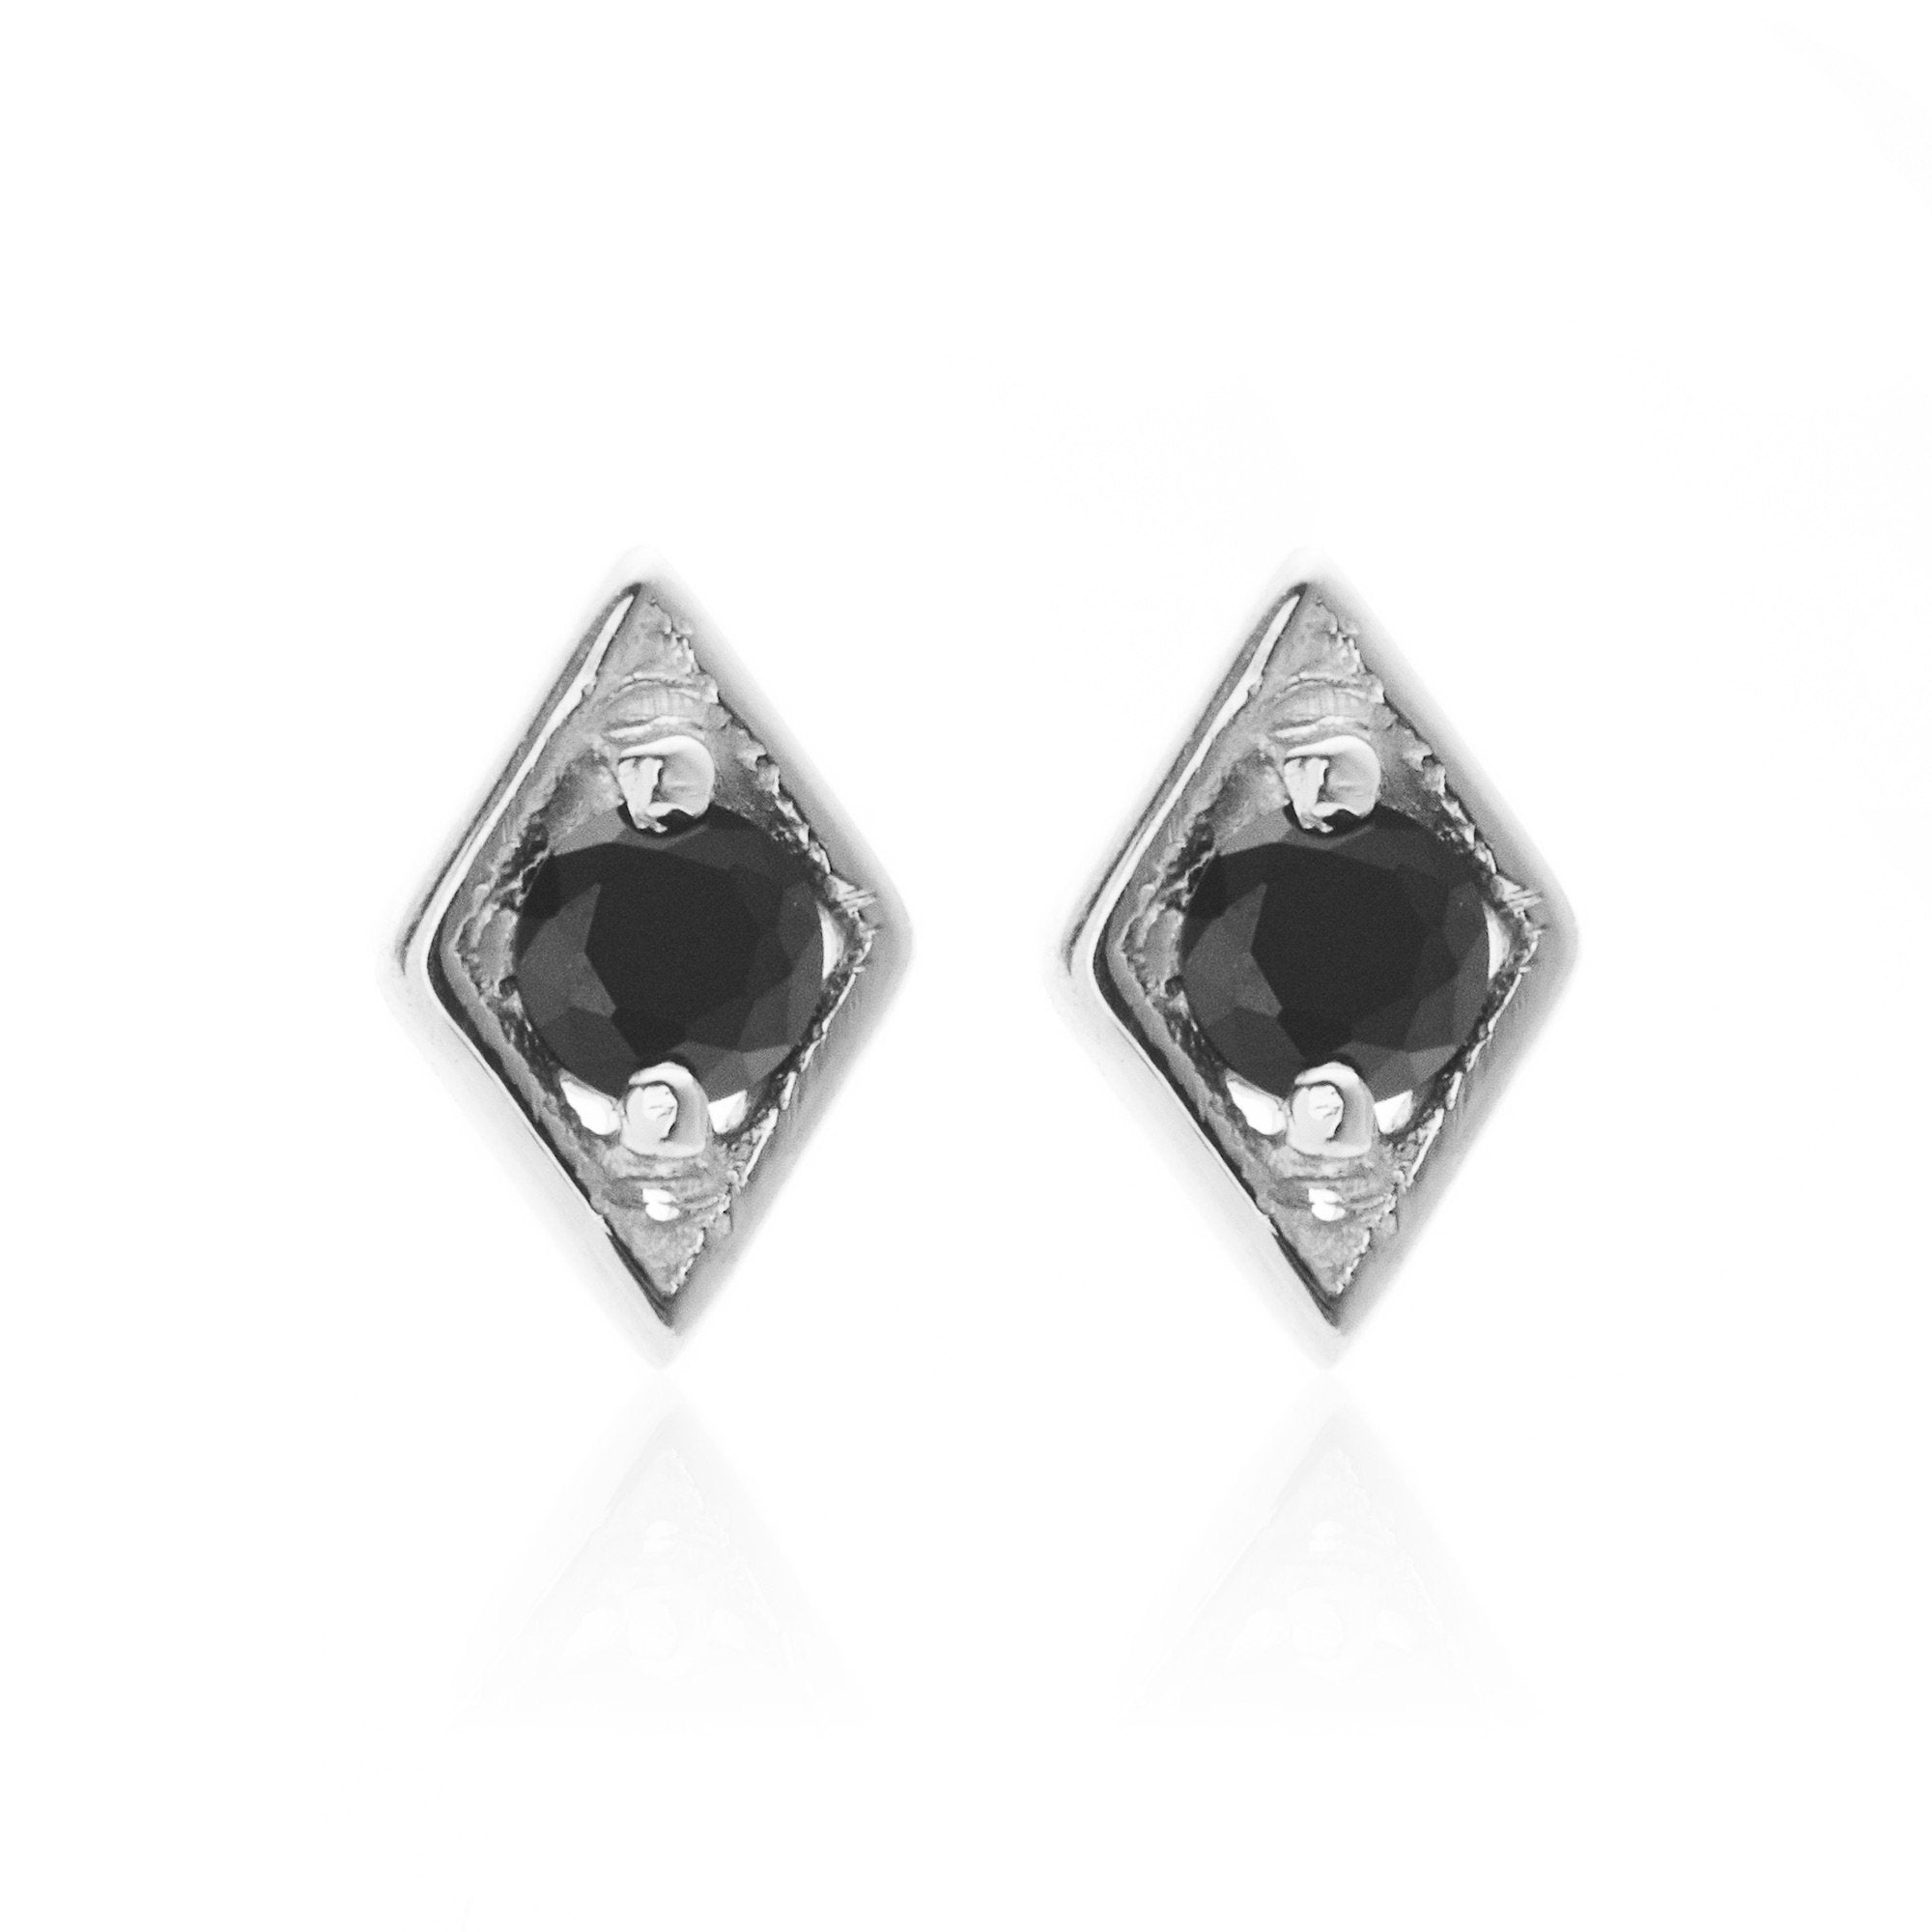 Silk & Steel Jewellery Superfine Keepsake Silver + Black Spinel Stud